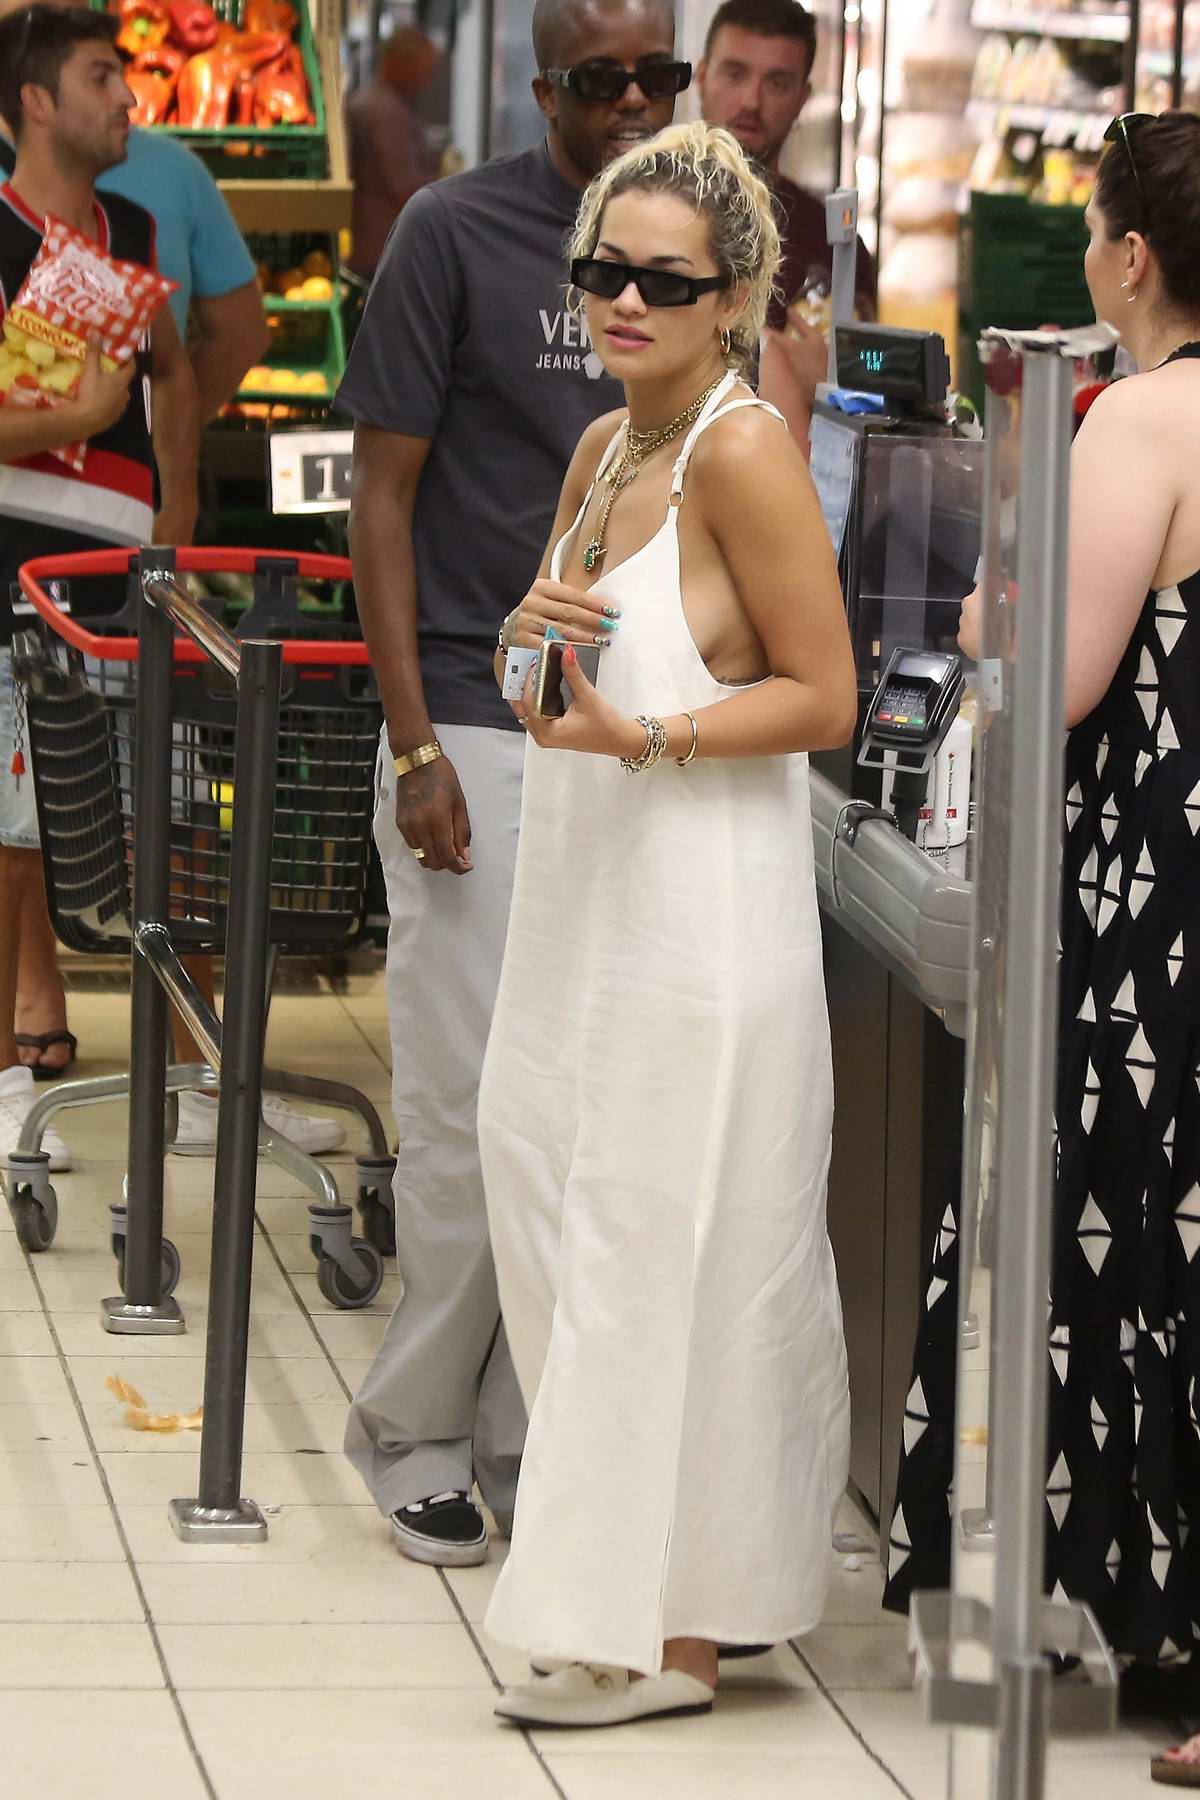 Rita Ora steps out in a white dress for some shopping during her vacation in Ibiza, Spain